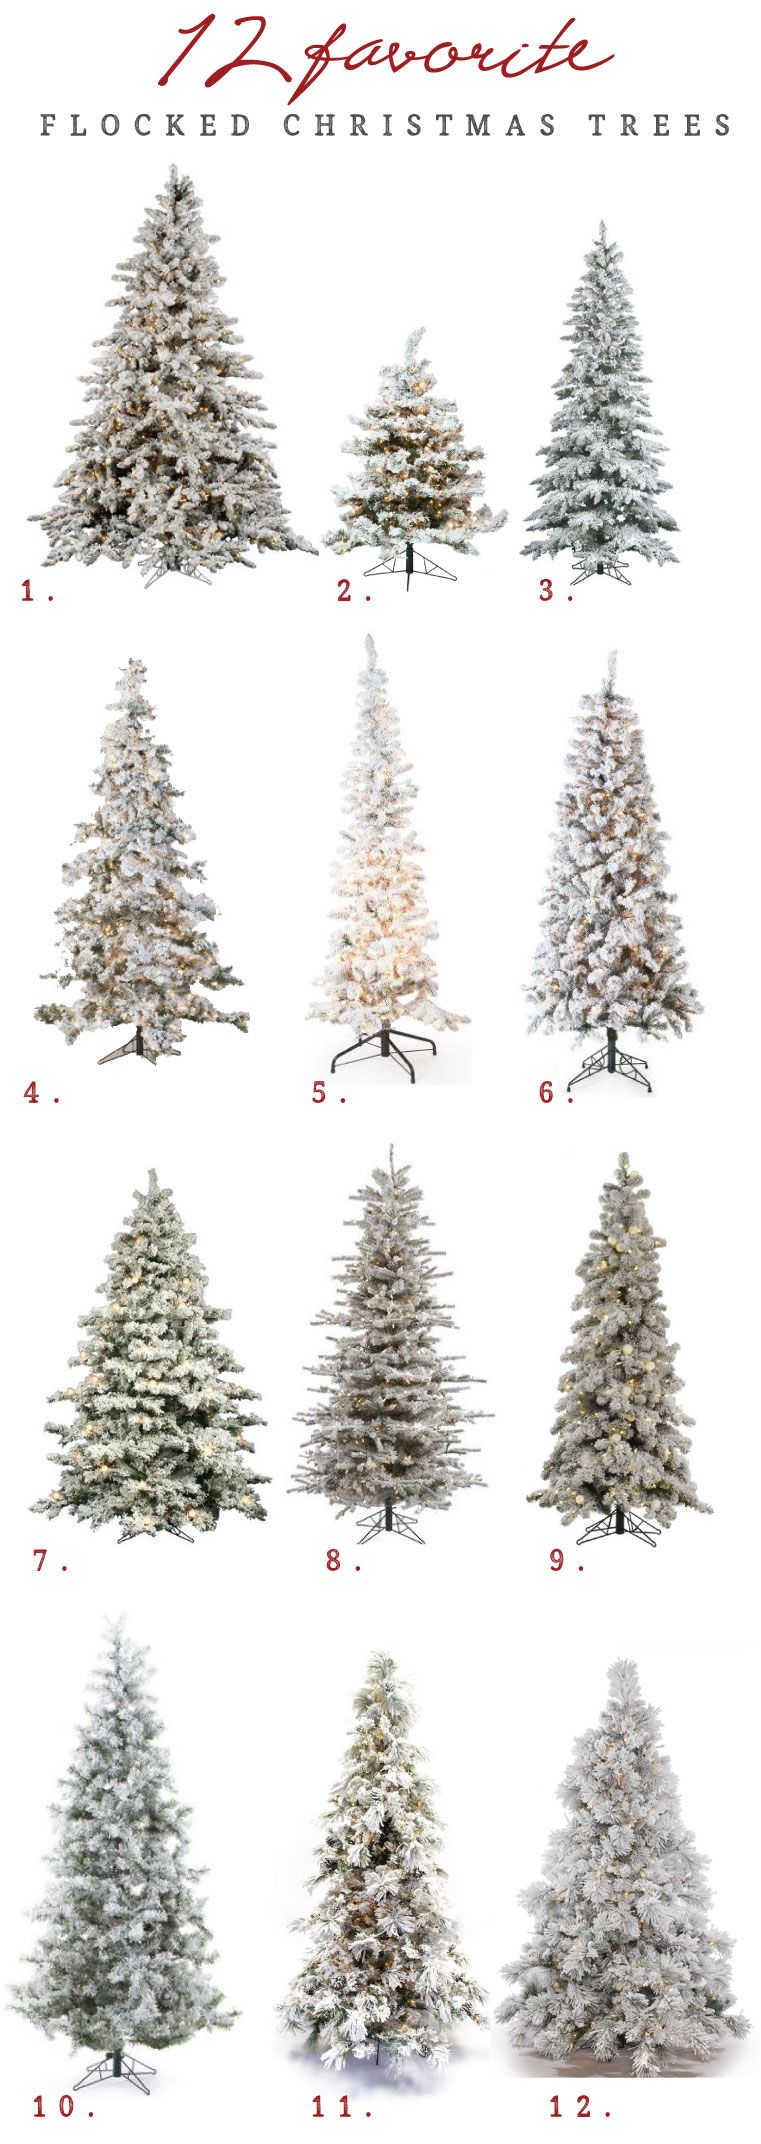 12 Of The Best Flocked Christmas Trees In Every Size Cool Christmas Trees Flocked Christmas Trees Decorated Slim Christmas Tree